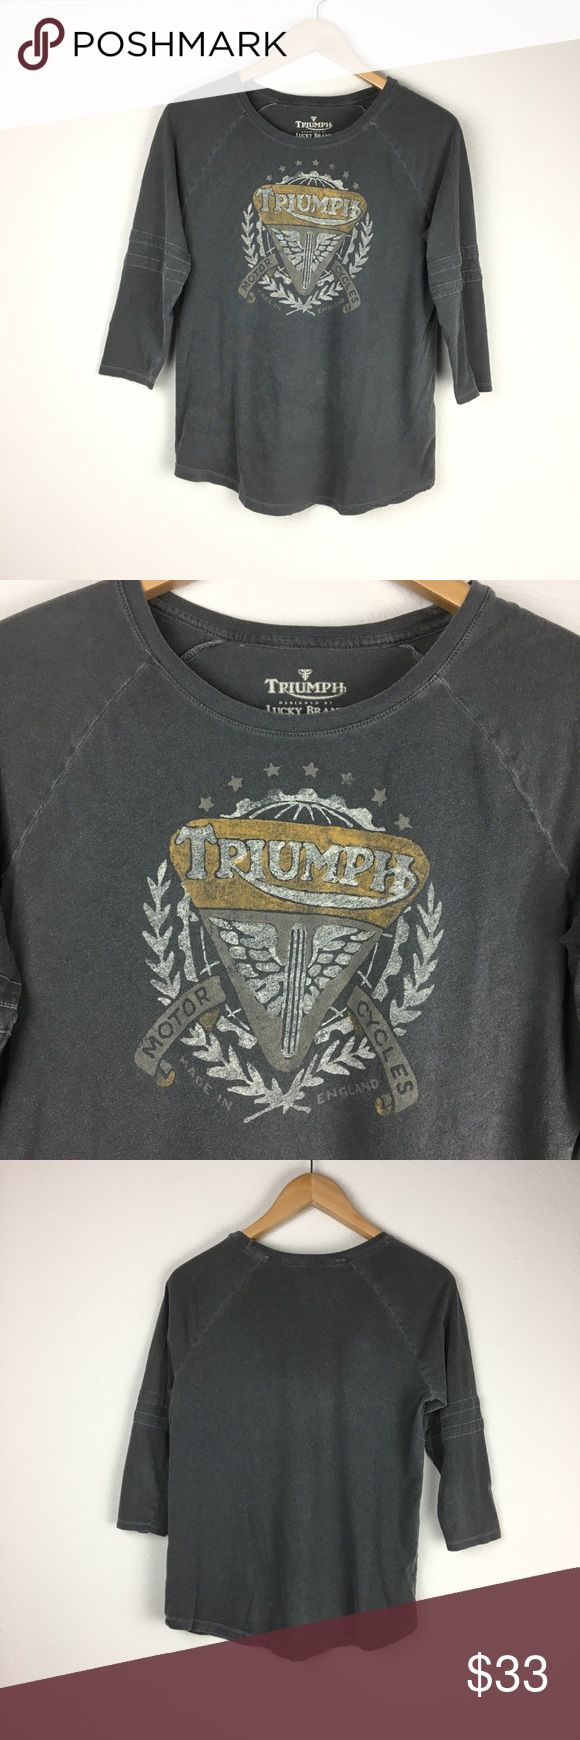 """Triumph Motorcycle Lucky Brand Tee Shirt 100% cotton.  Triumph designed by Lucky Brand.  Triumph motorcycles.  Intentional """"worn-in"""" look and feel. Dark gray with graphic printed on front.  ¾ length sleeves with subtle stripes.  Round neckline.  Excellent pre-owned condition. Lucky Brand Tops Tees - Long Sleeve"""